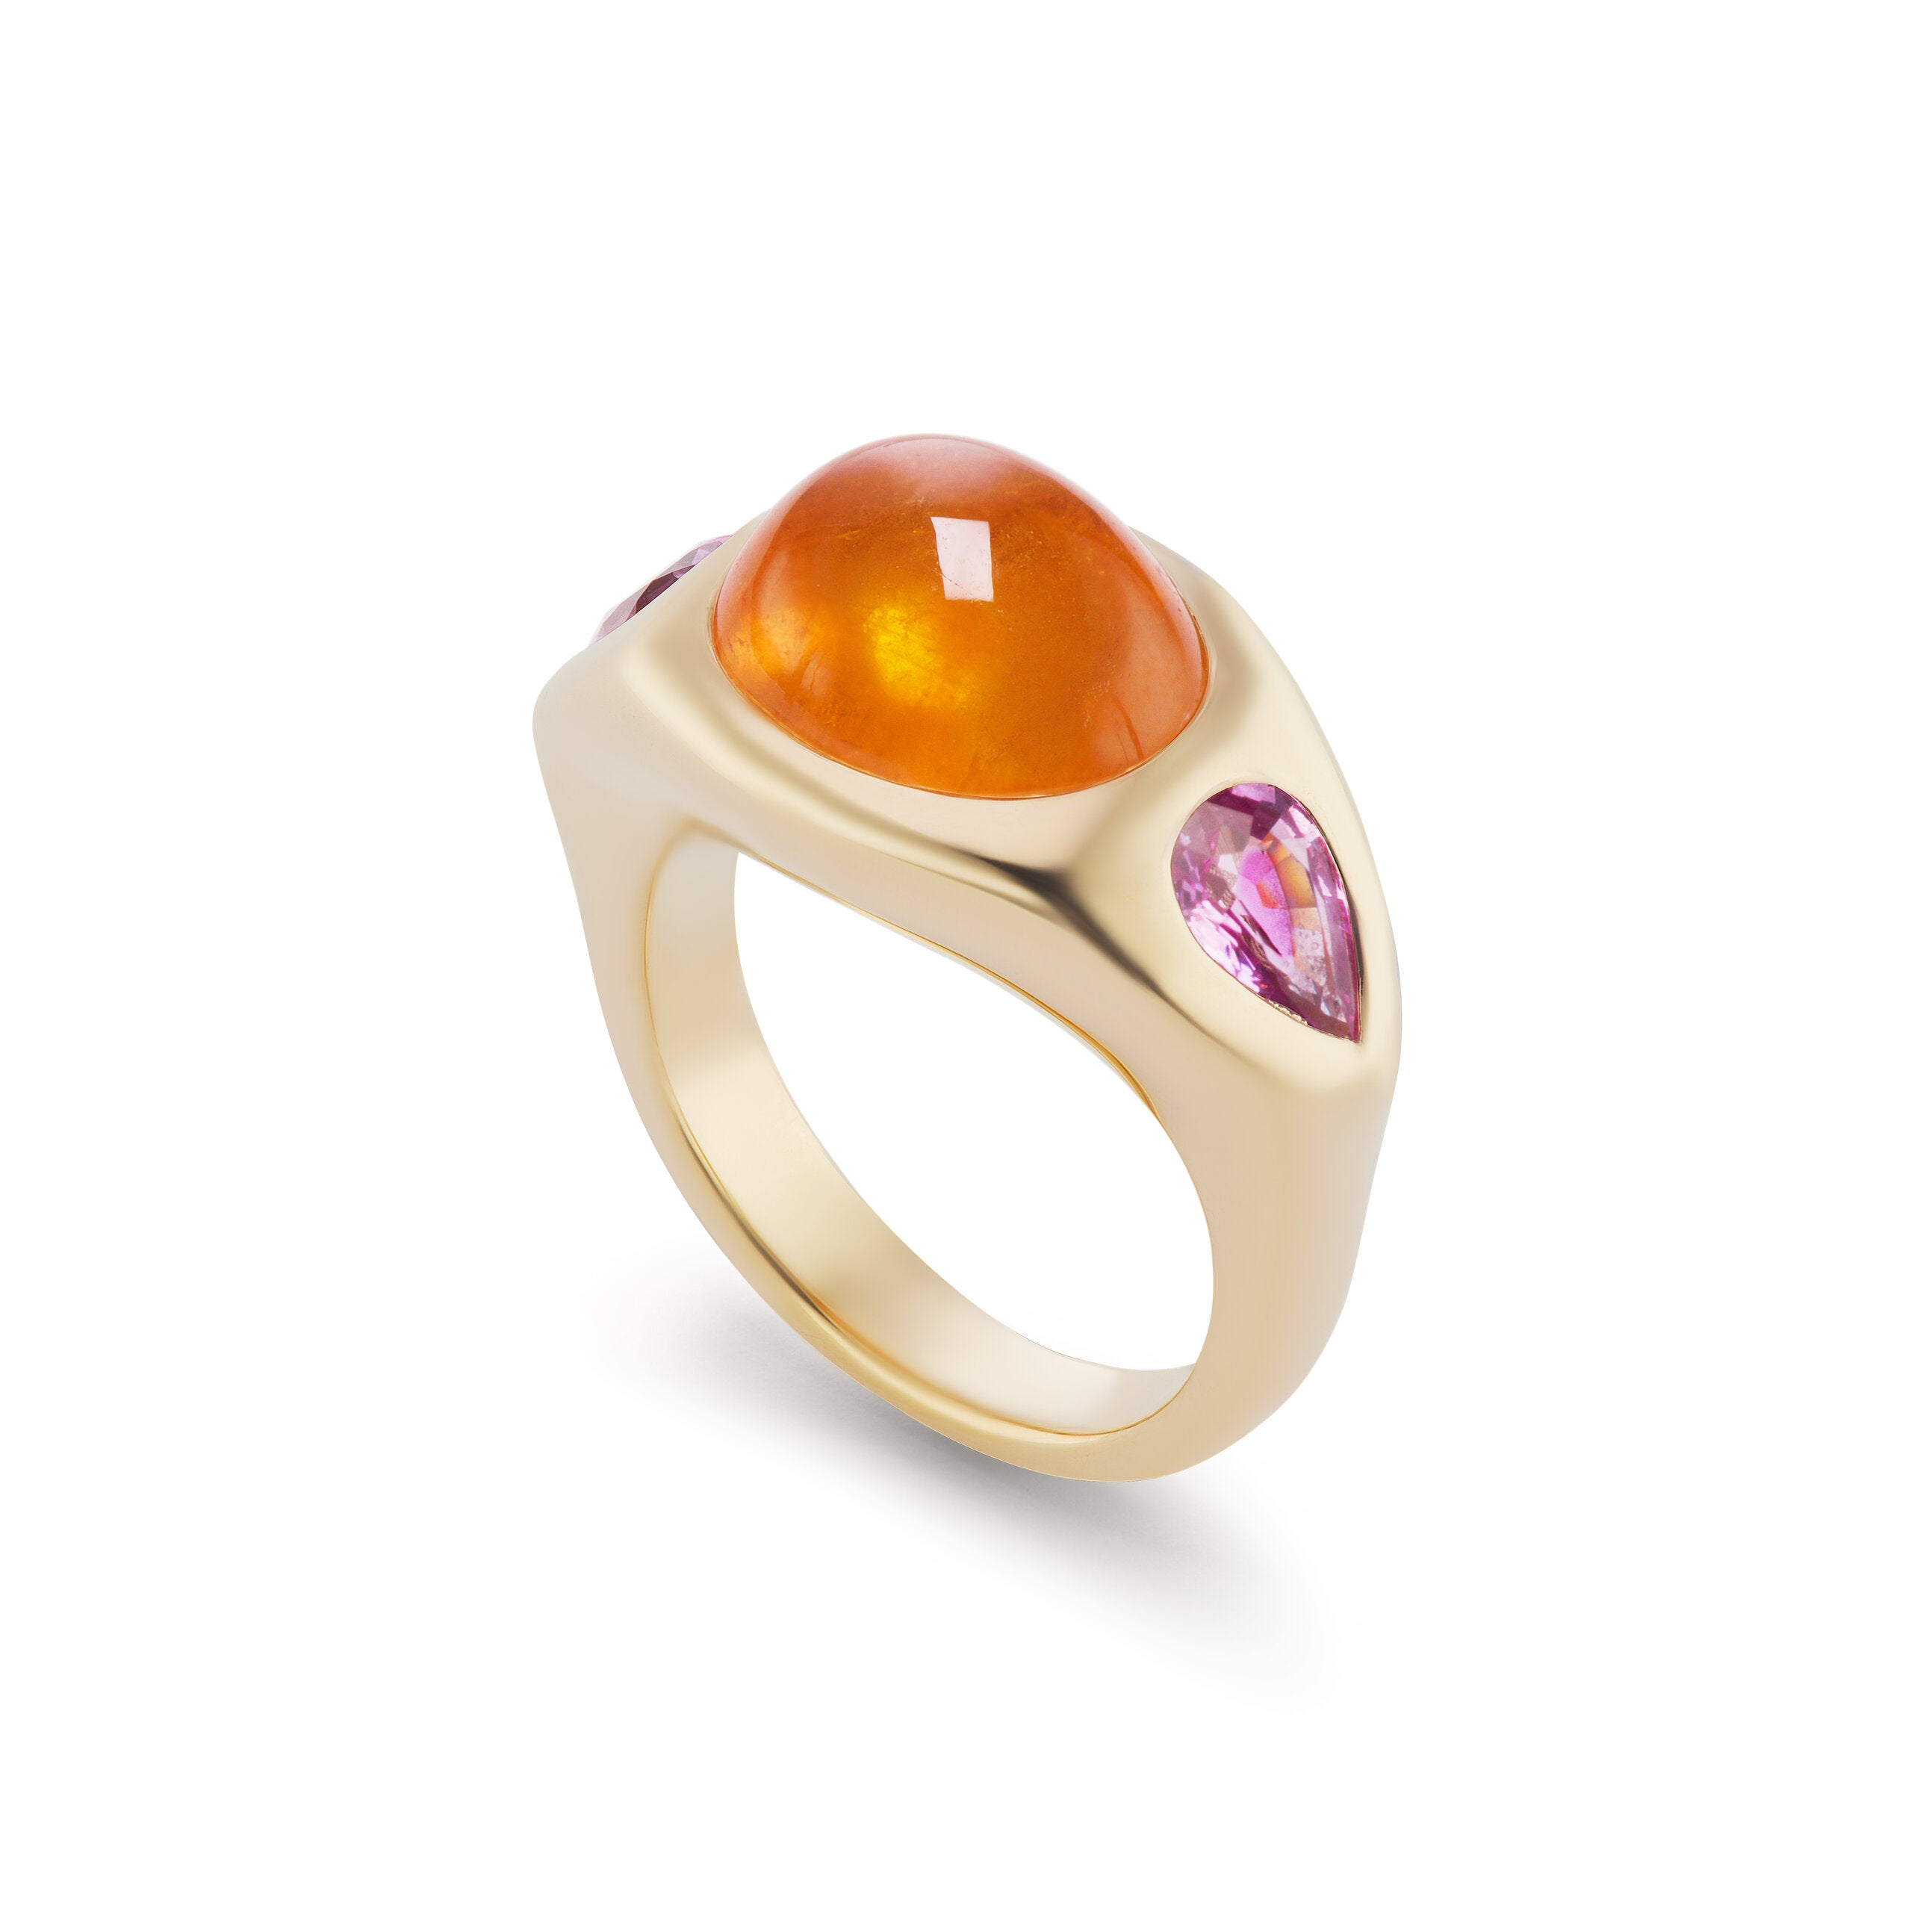 Gypsy Ring with Spessartite Cabochon and Pink Sapphire Pears